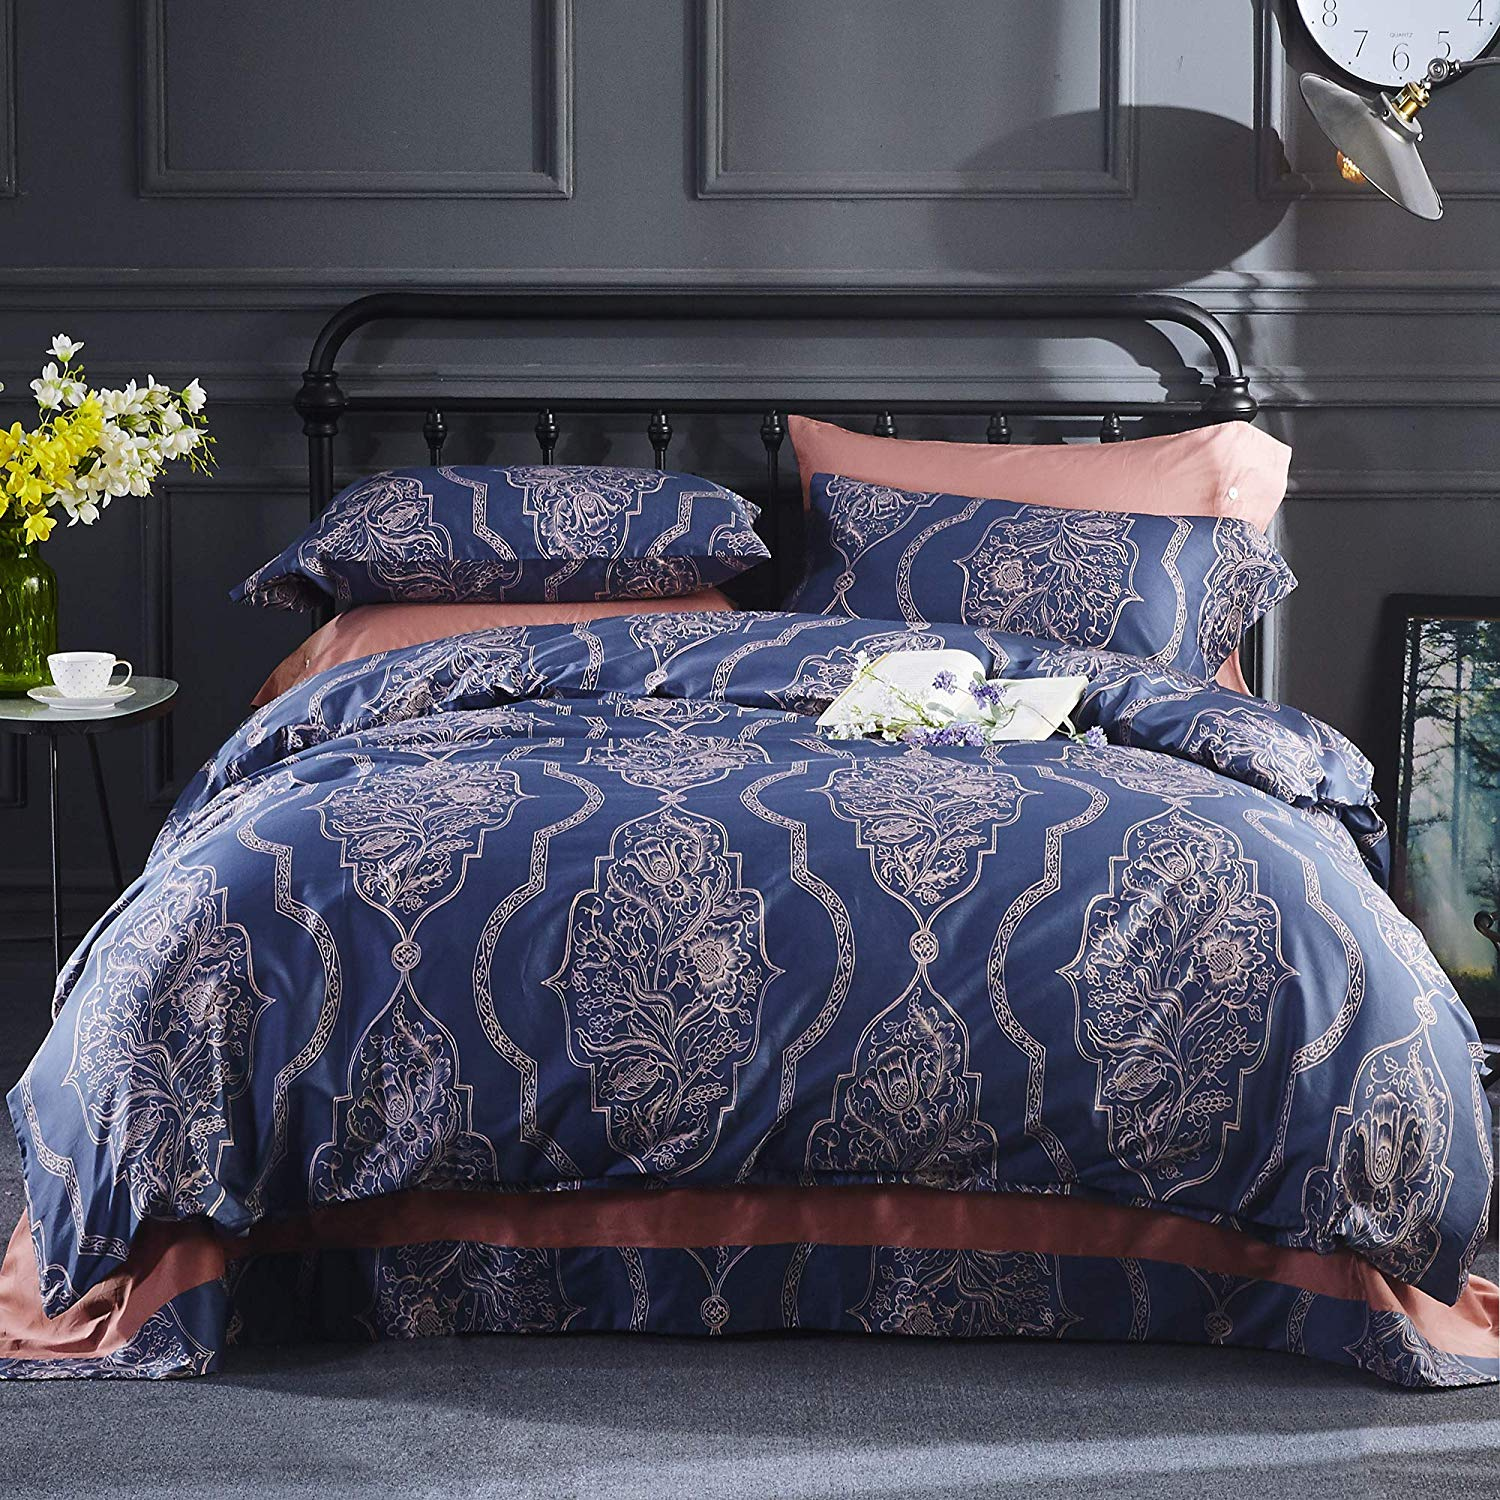 Asian Inspired Decorative Design Featuring Embroidered Orienta Duvet Cover Set Orient Sense Full Queen Black and White 3 Piece Coverlet Comforter 88x92 2 Pillows 20x26